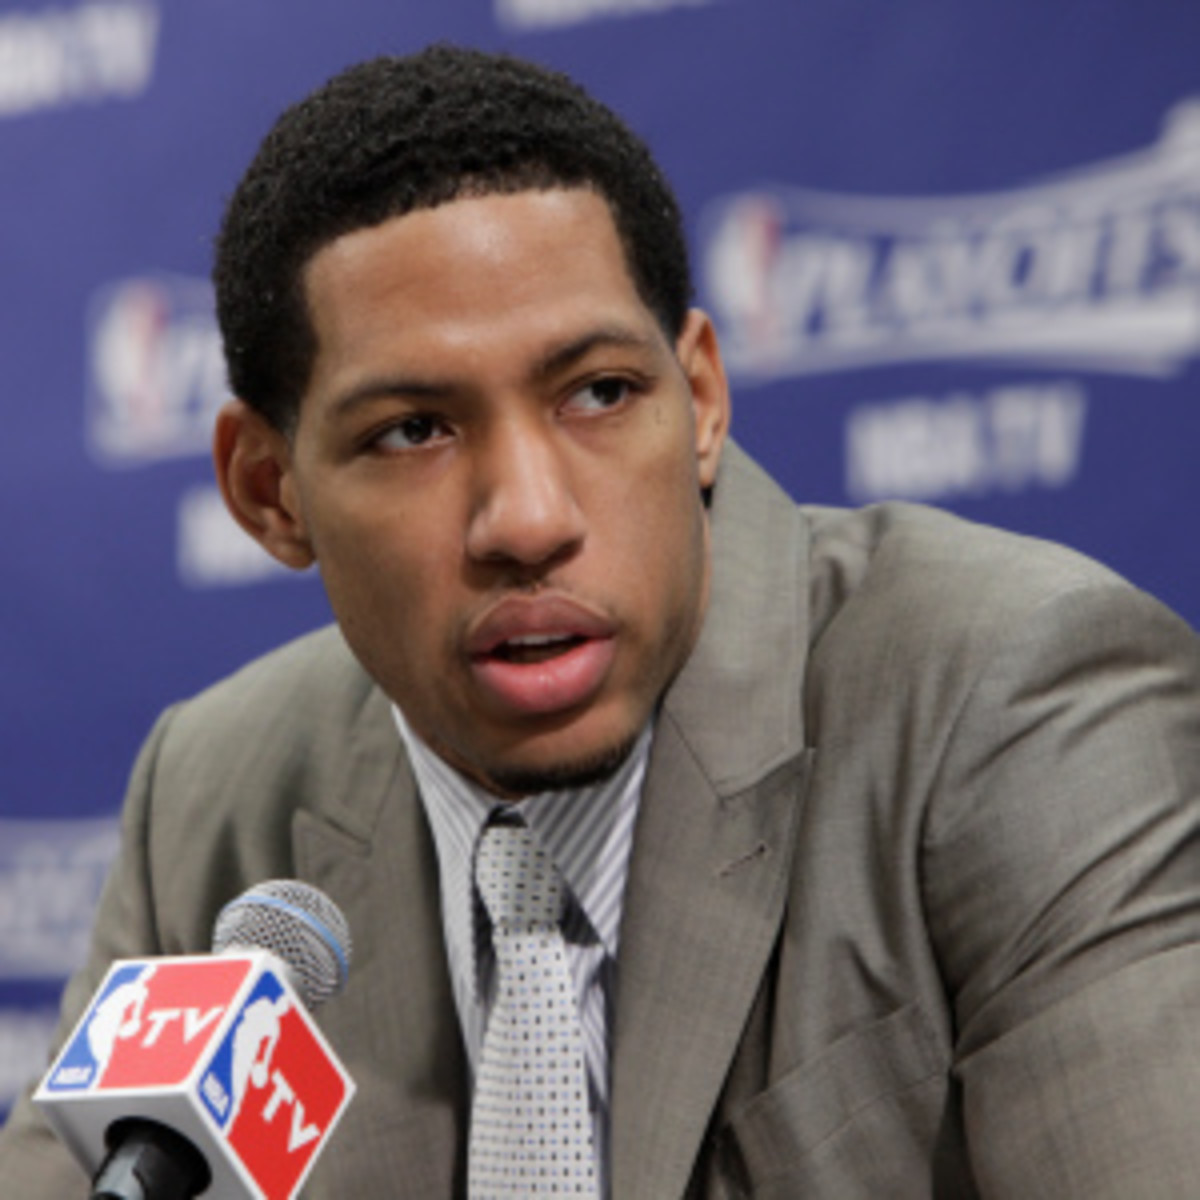 Danny Granger could make his season debut for the Pacers on Wednesday. (Ron Hoskins/Getty Images)